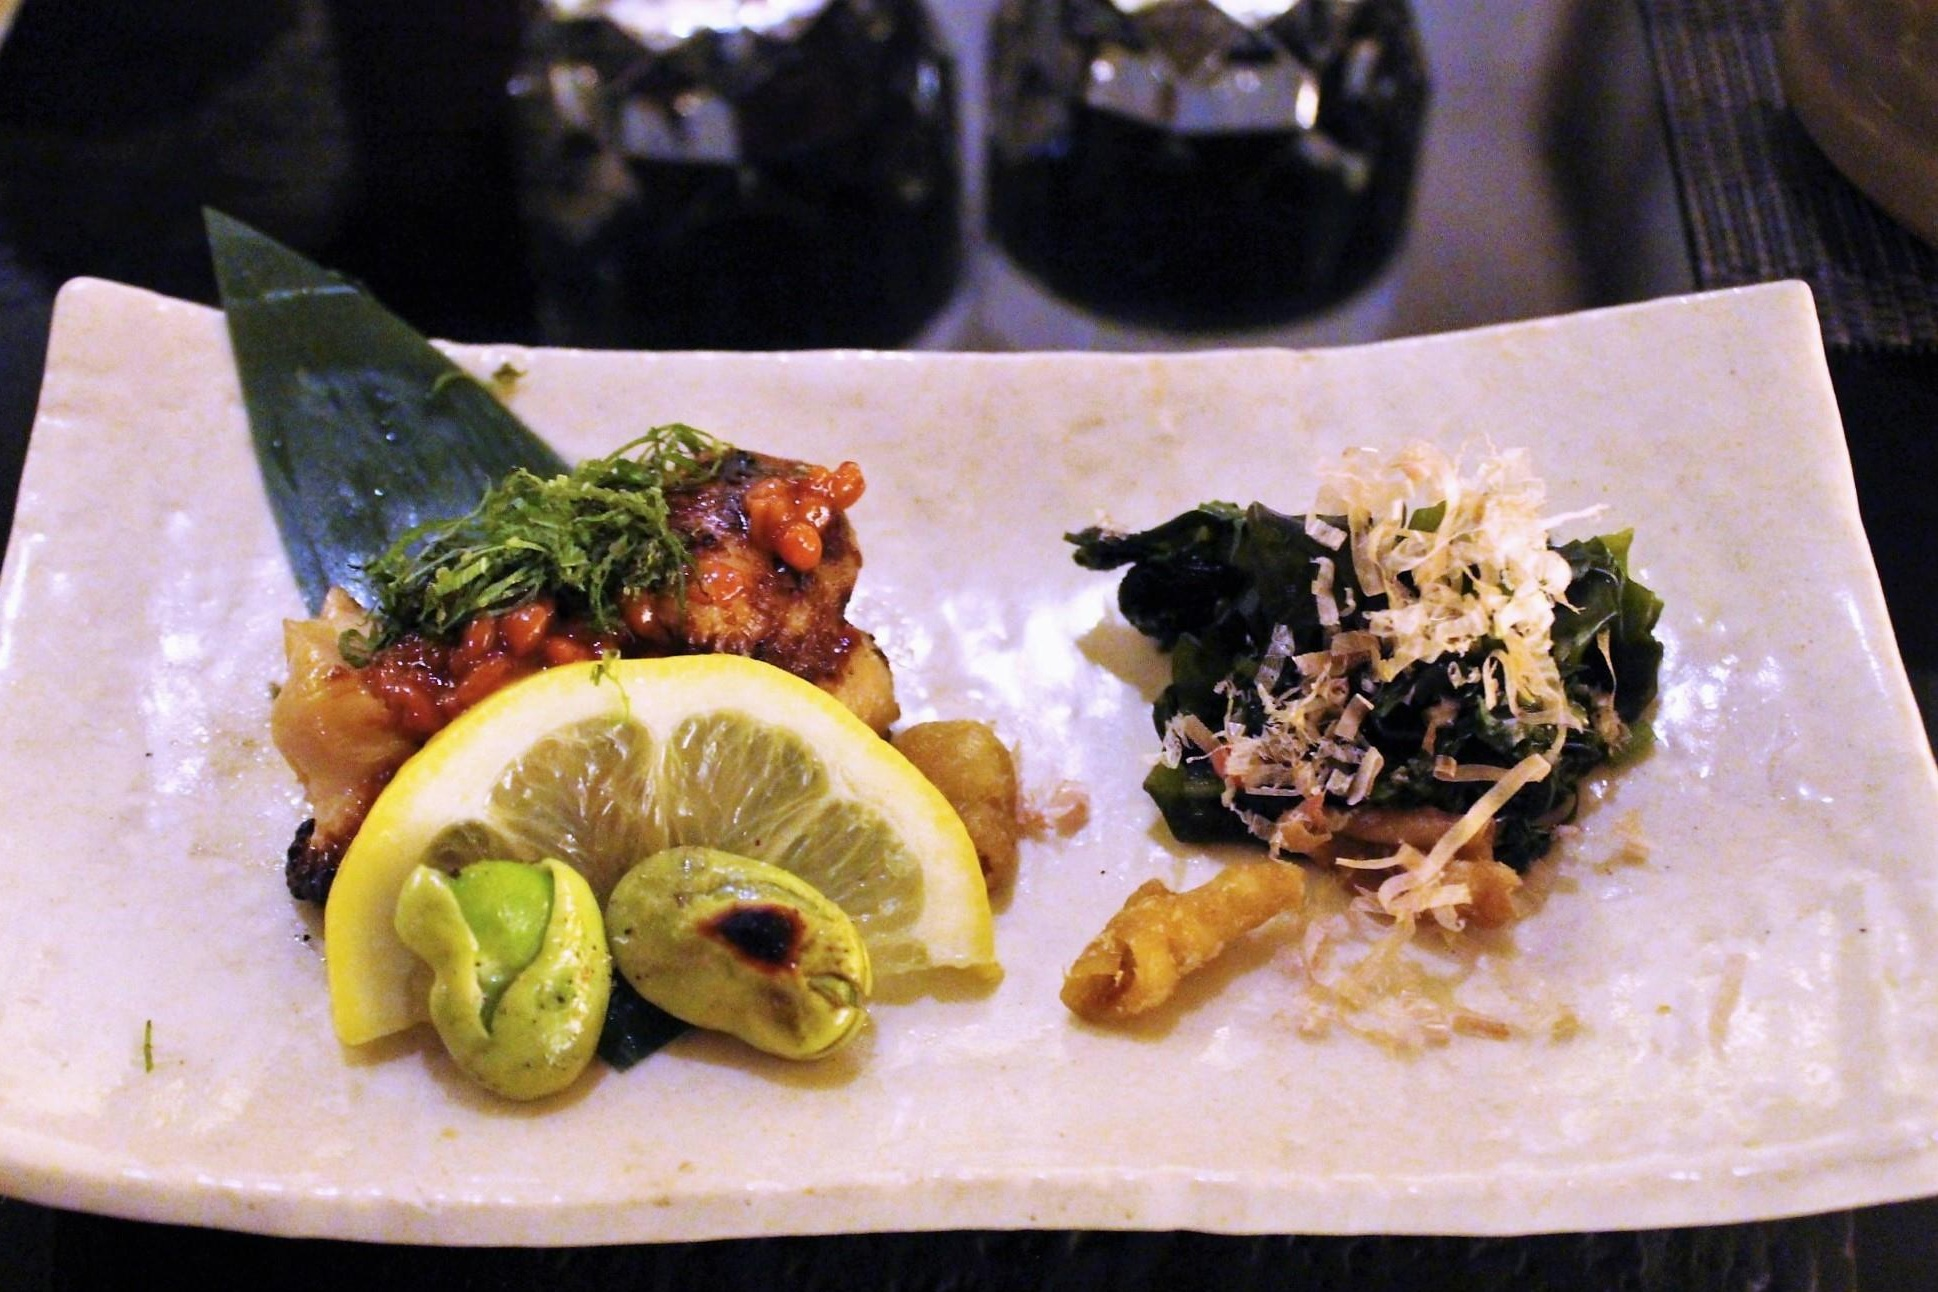 Chicken Thigh with Moromiso and Shiso Leaf; Seaweed, Bonito Flakes, Chicken Skin, and Shungiku Leaf